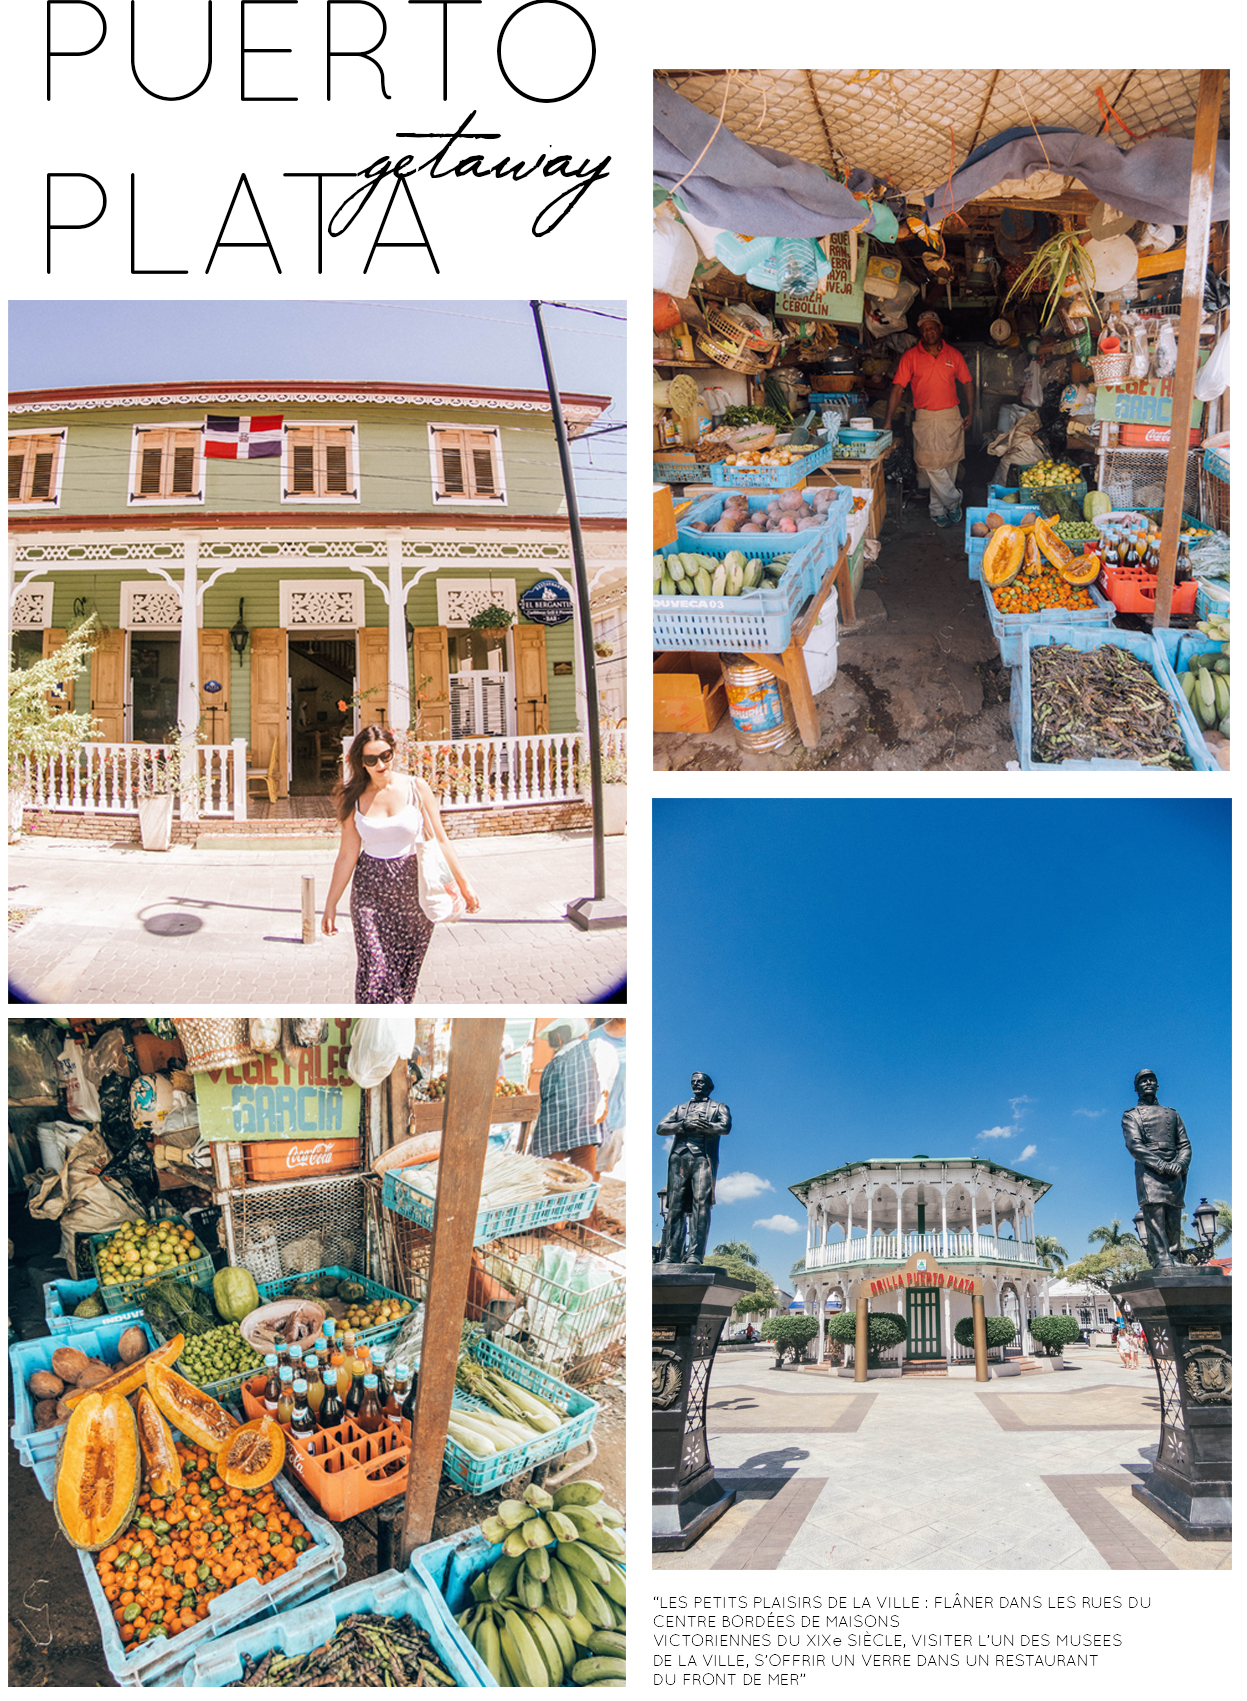 PUERTO-PLATA-DESTINATION-GUIDE-DOMINICAN-REPUBLIC-BOUBOUTEATIME